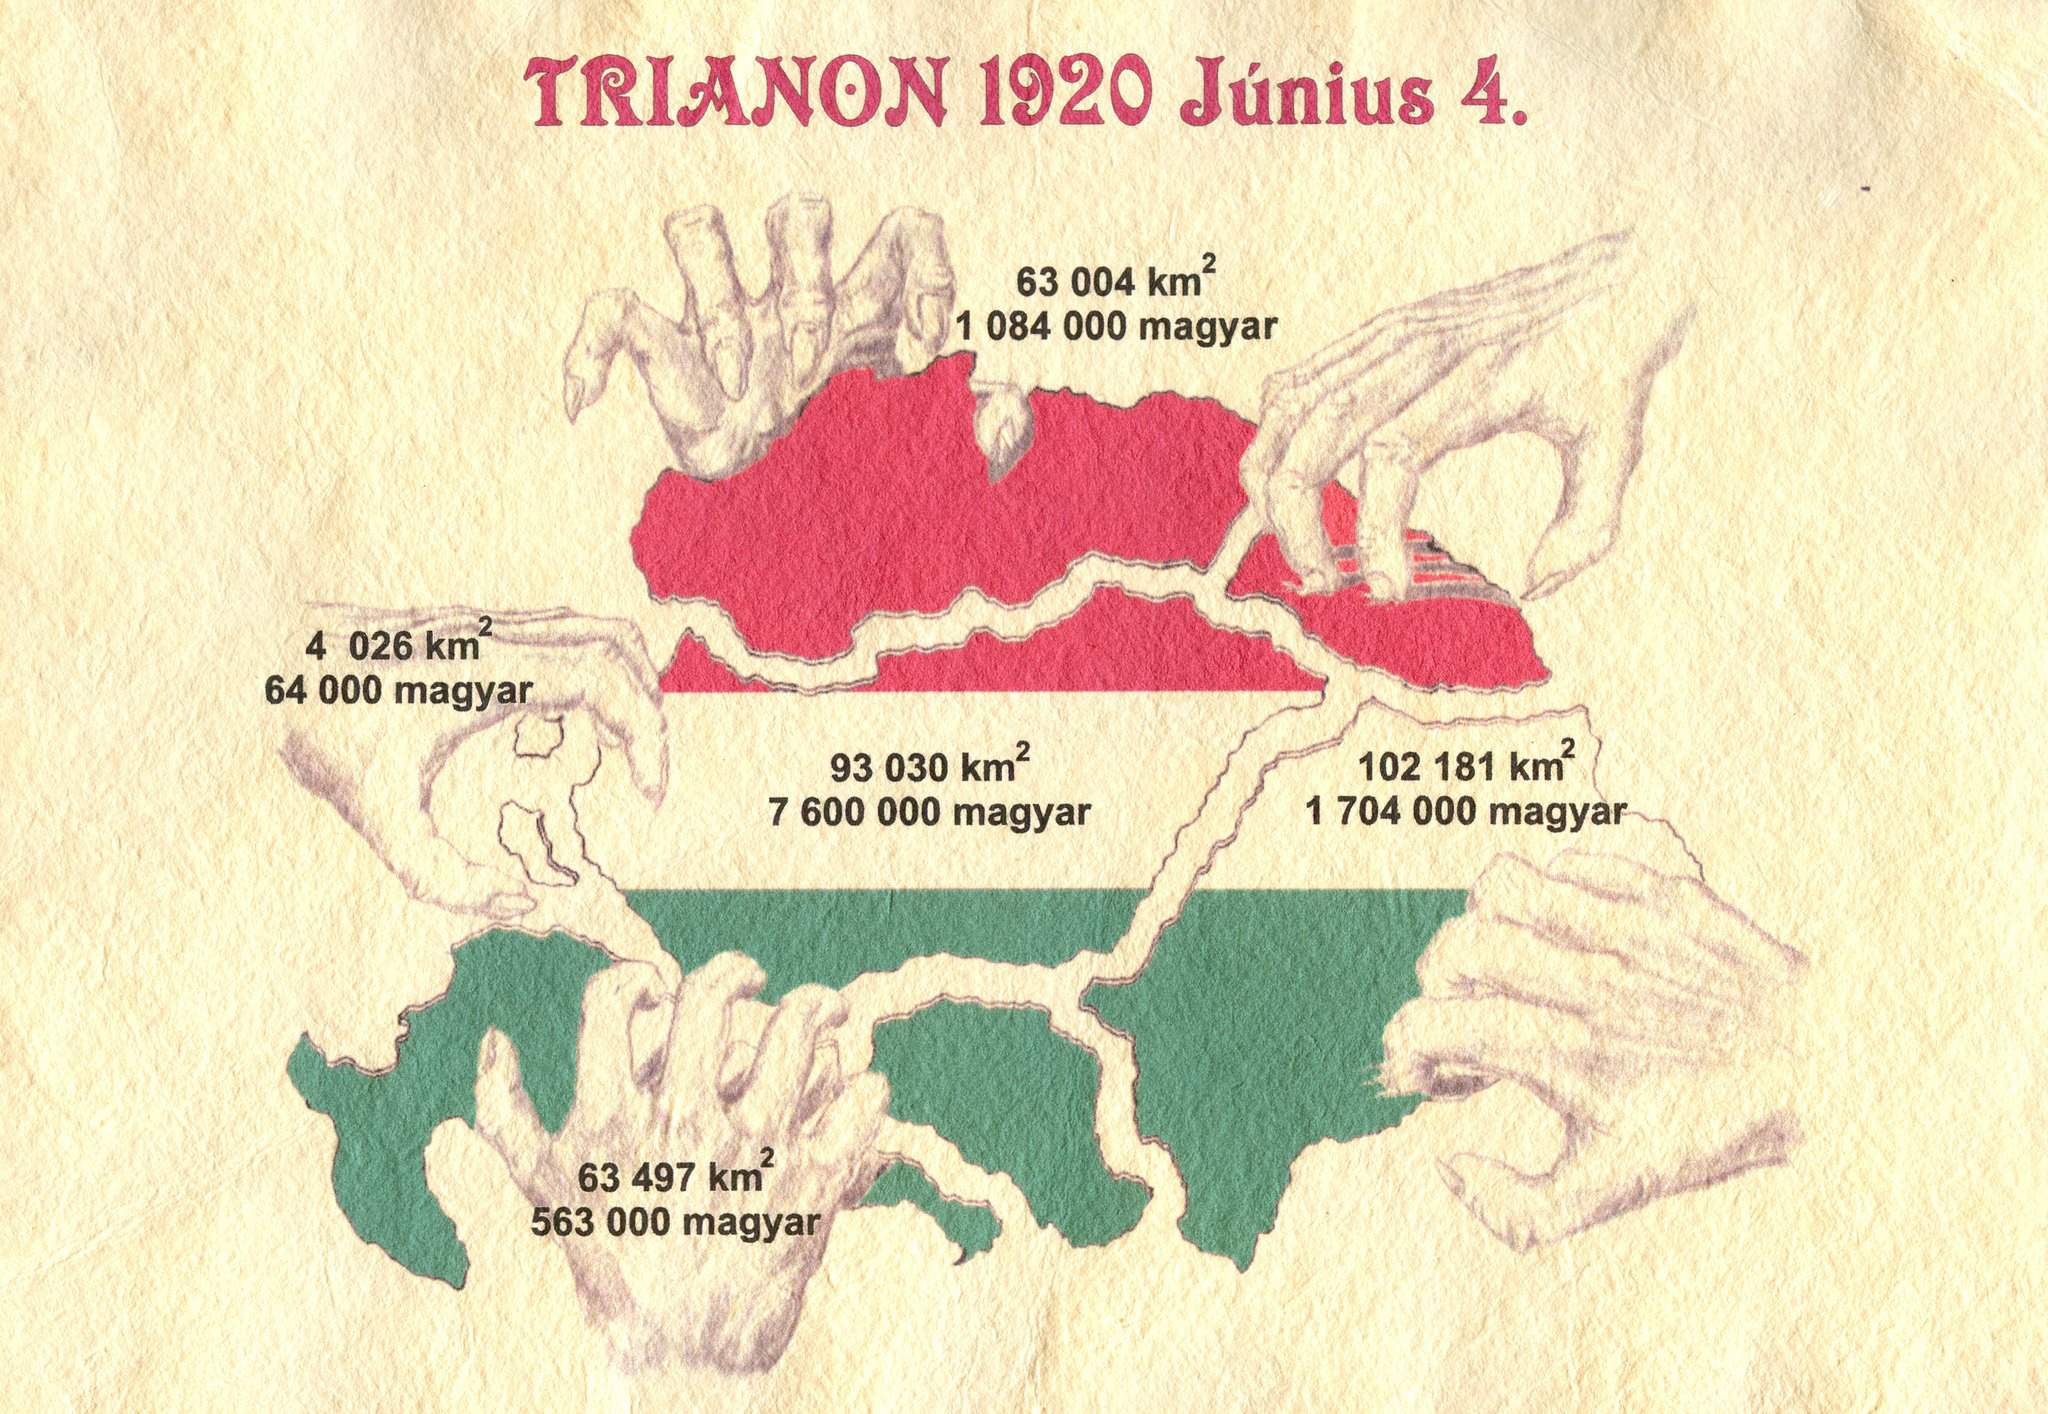 Quotes about the Treaty of Trianon by famous non-Hungarian people